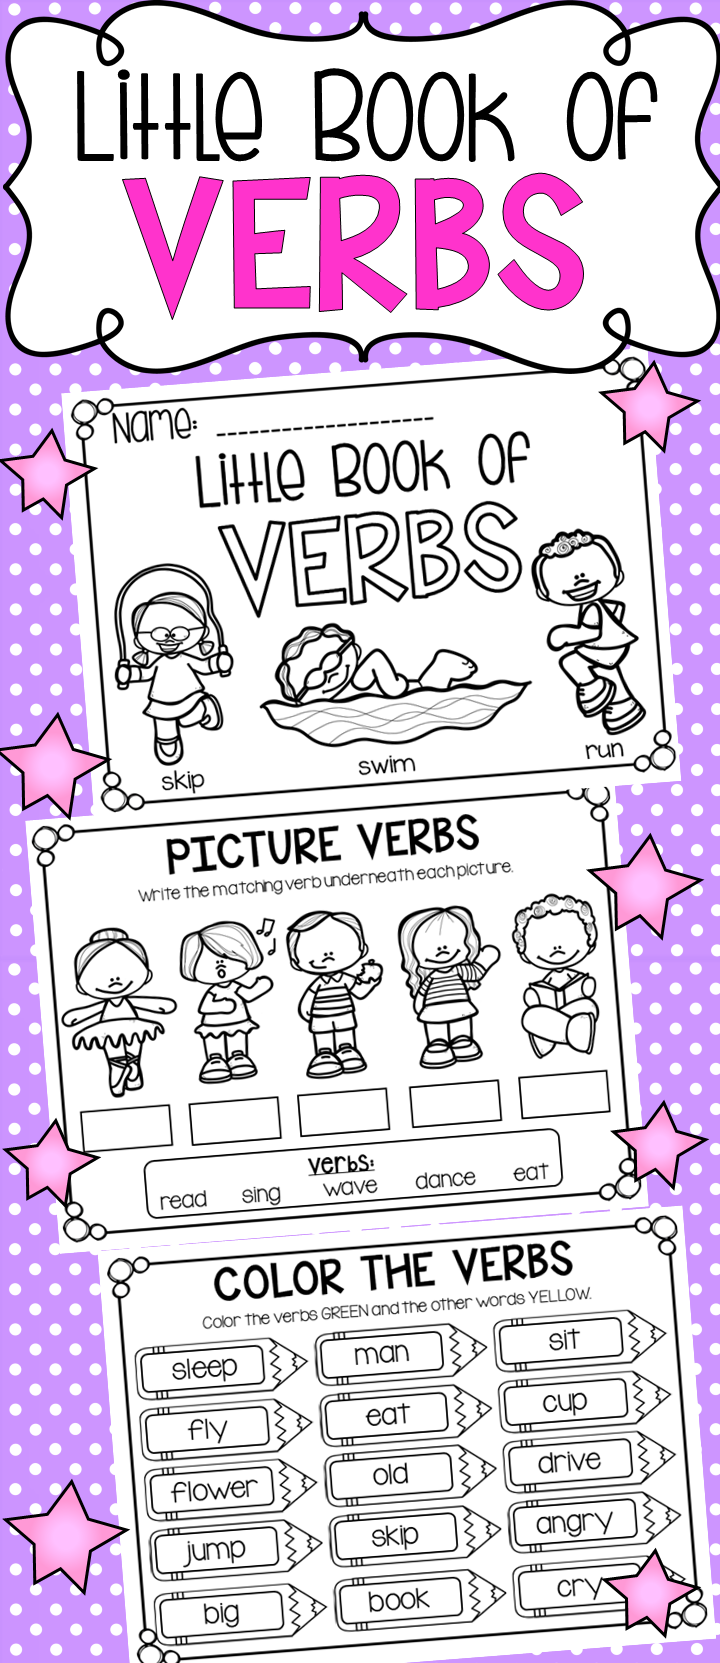 Little Book of Verbs - Half Page Printable Worksheet Booklet